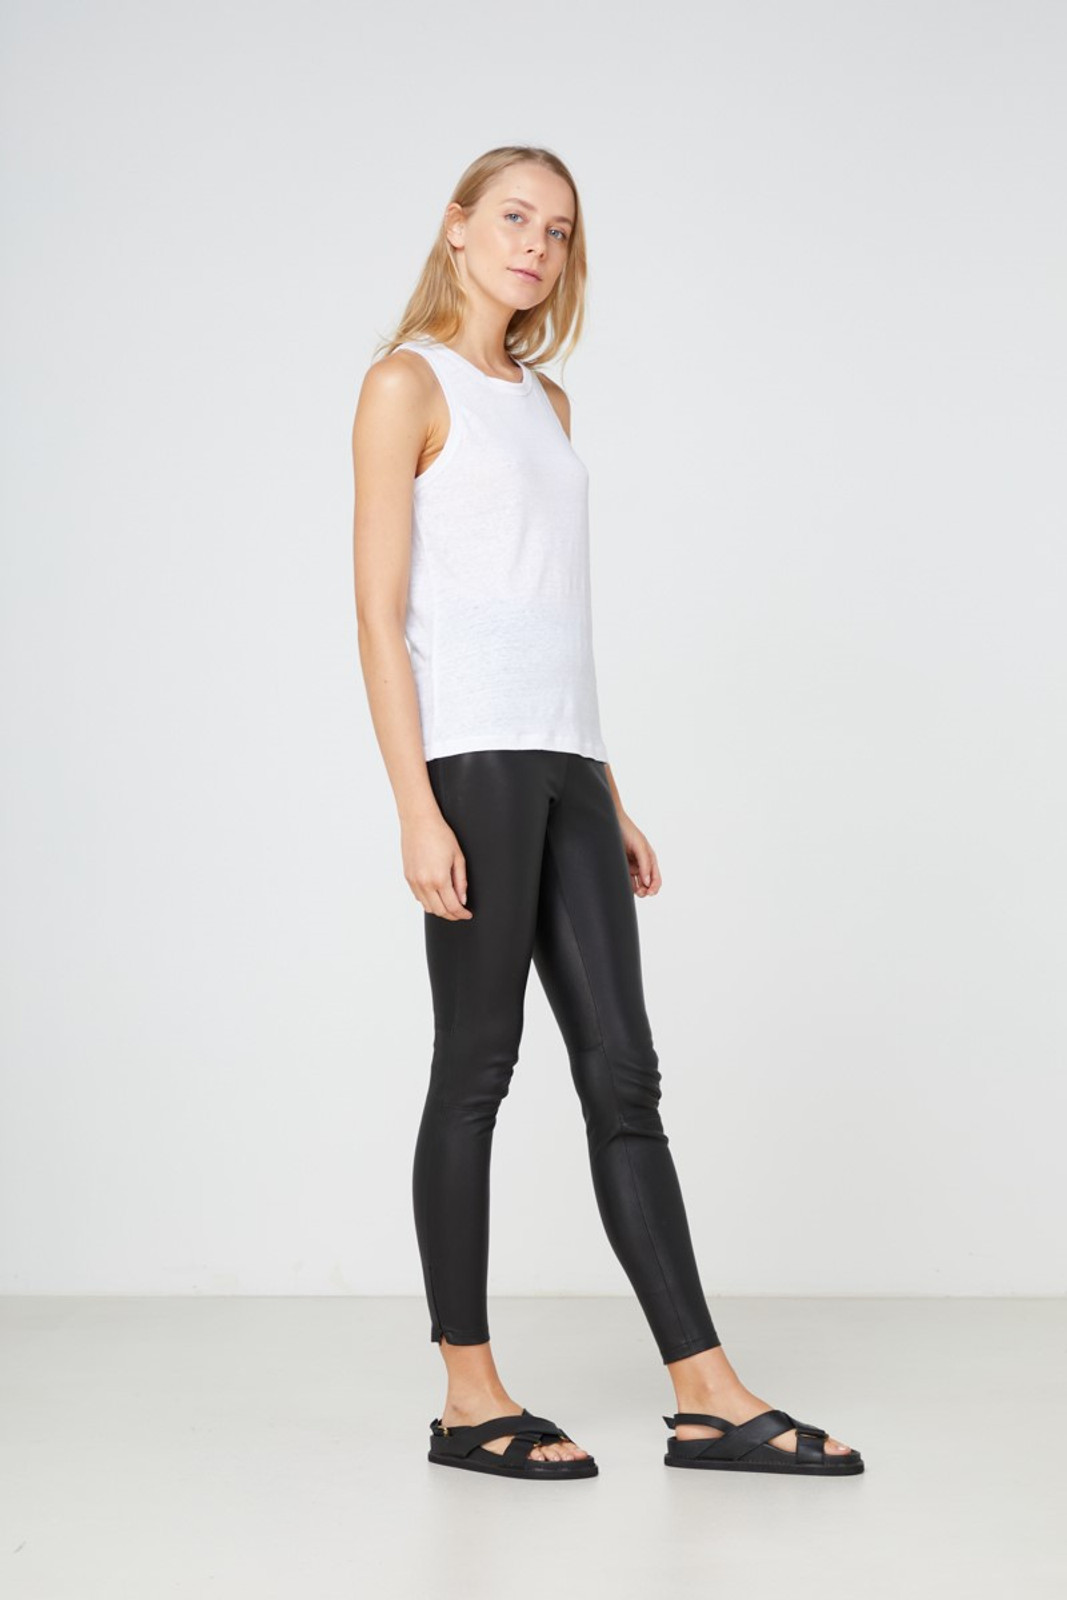 Elka Collective EC Linen Tank 2.0 White  5